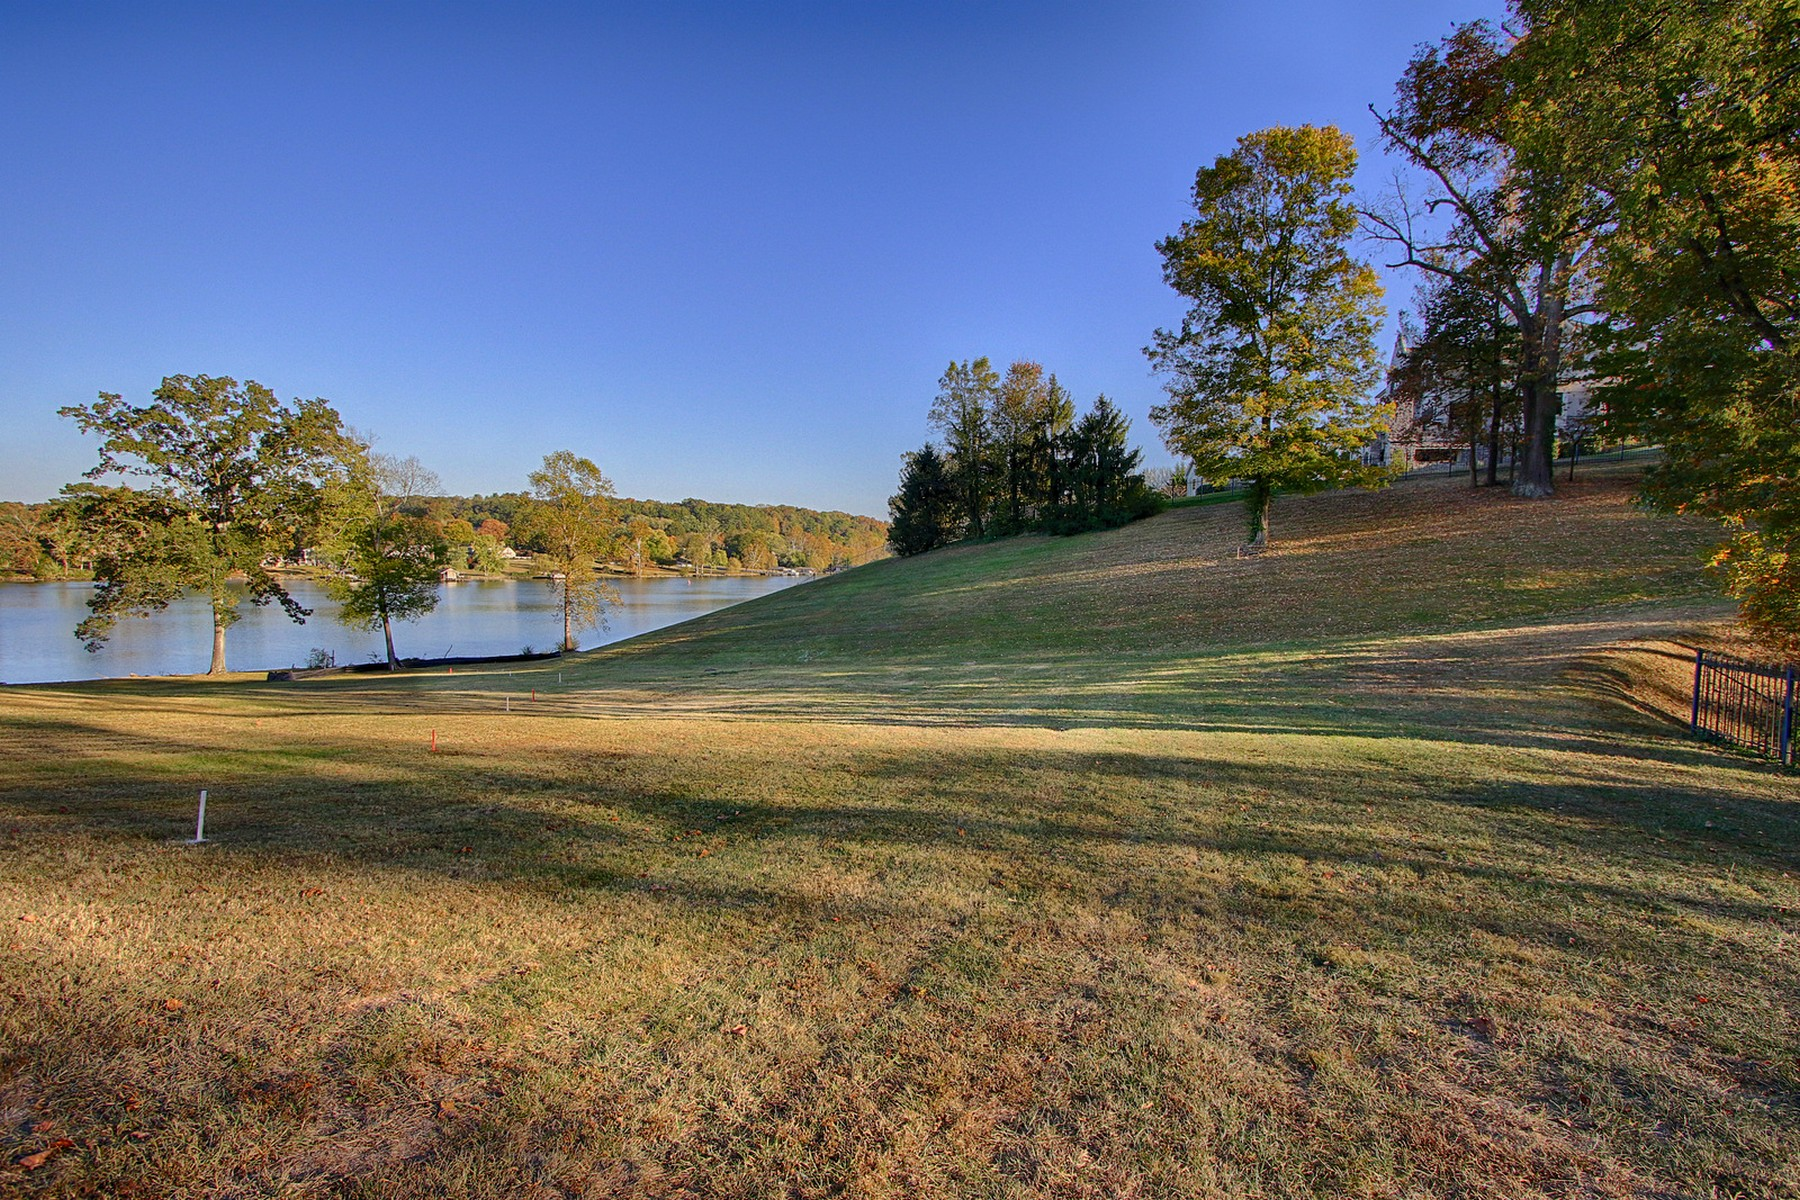 Land for Sale at Villa Estates At Lyons View Pike 5656 Lyons View Pike Lot #4 Knoxville, Tennessee 37919 United States